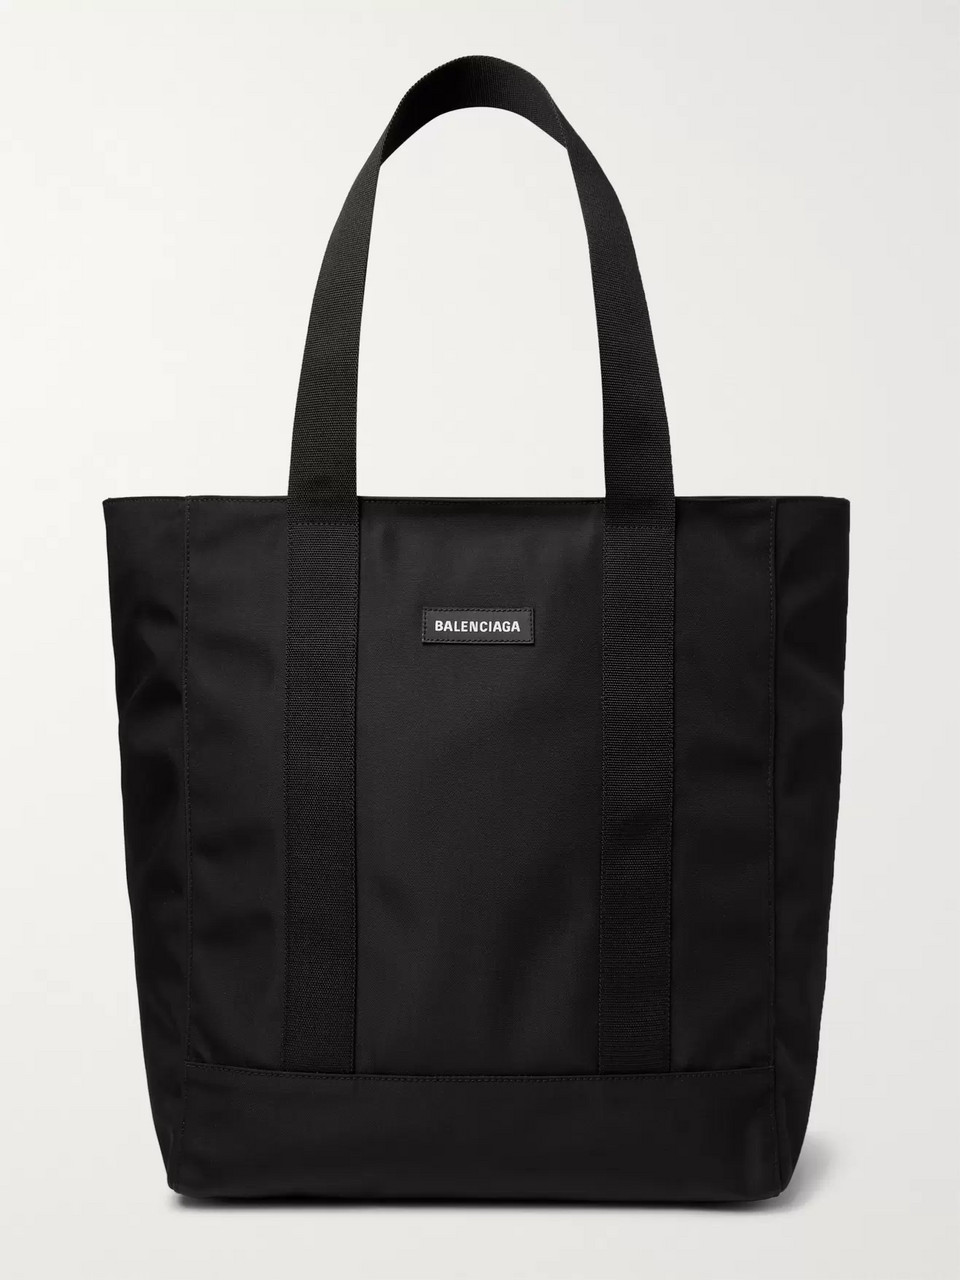 Balenciaga Logo-Appliquéd Canvas Tote Bag